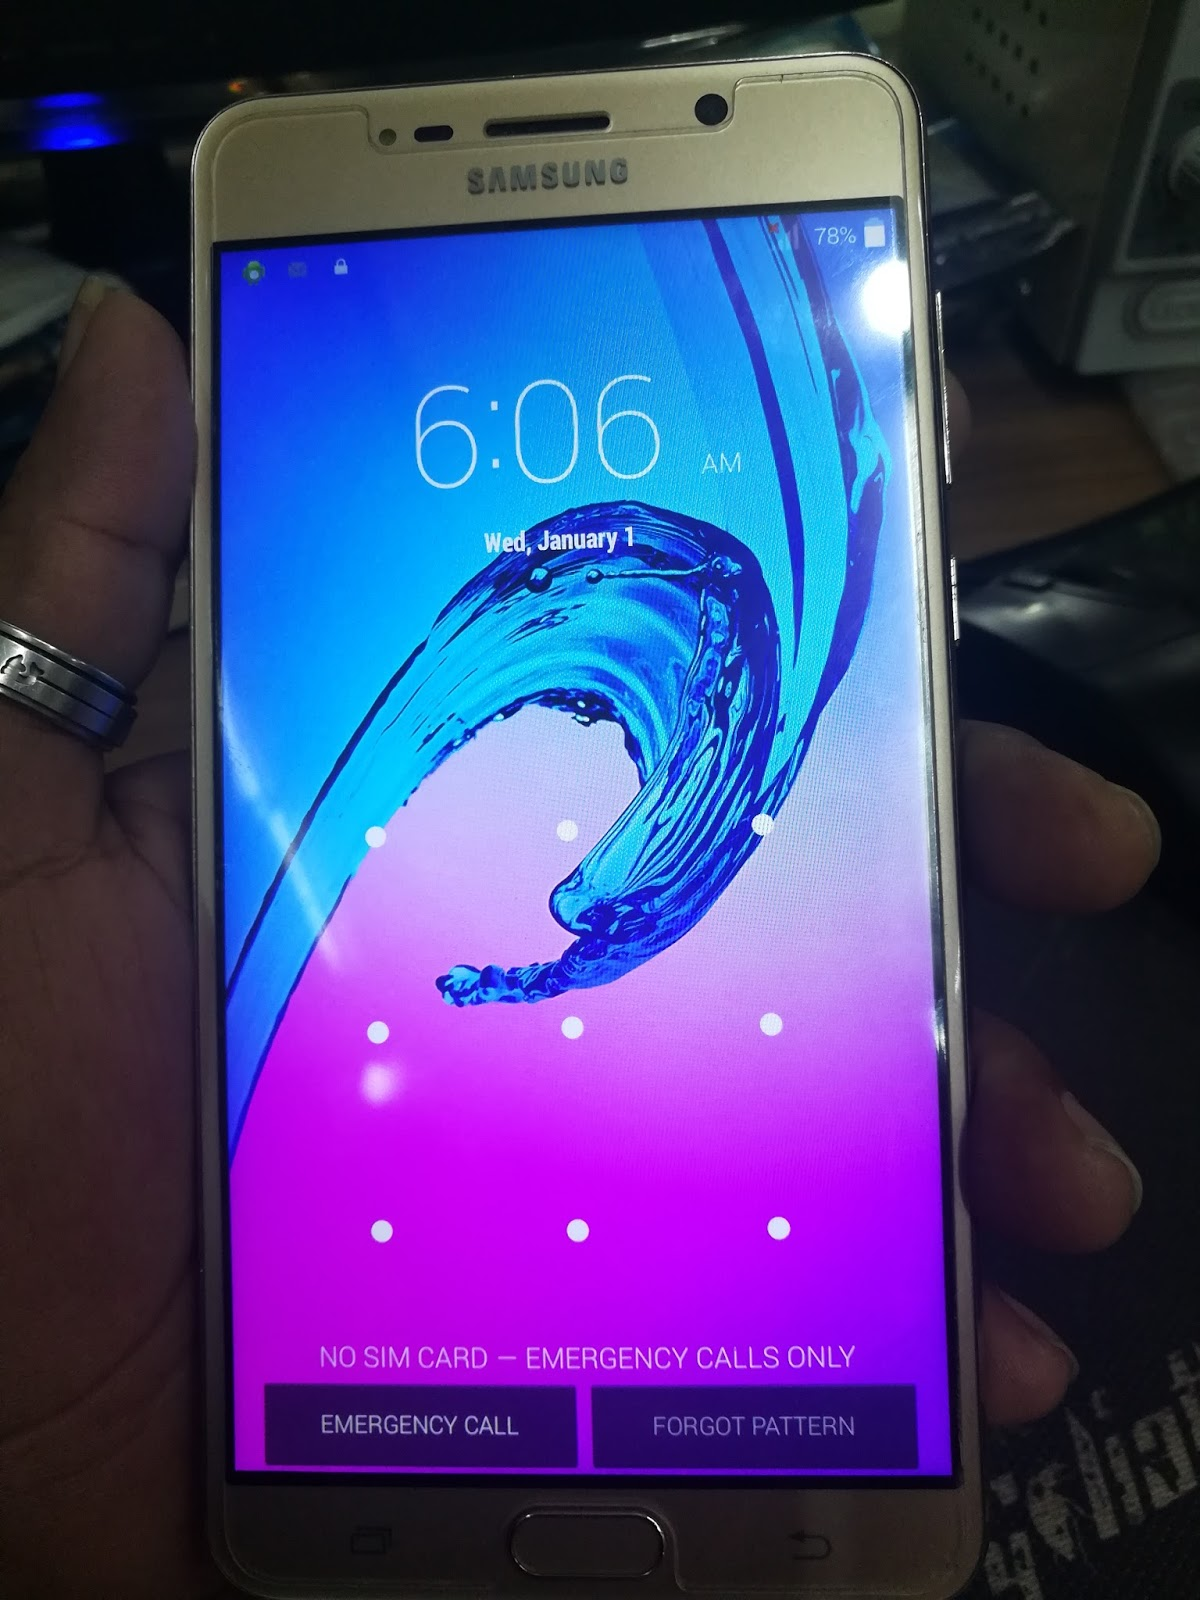 Samsung Support India